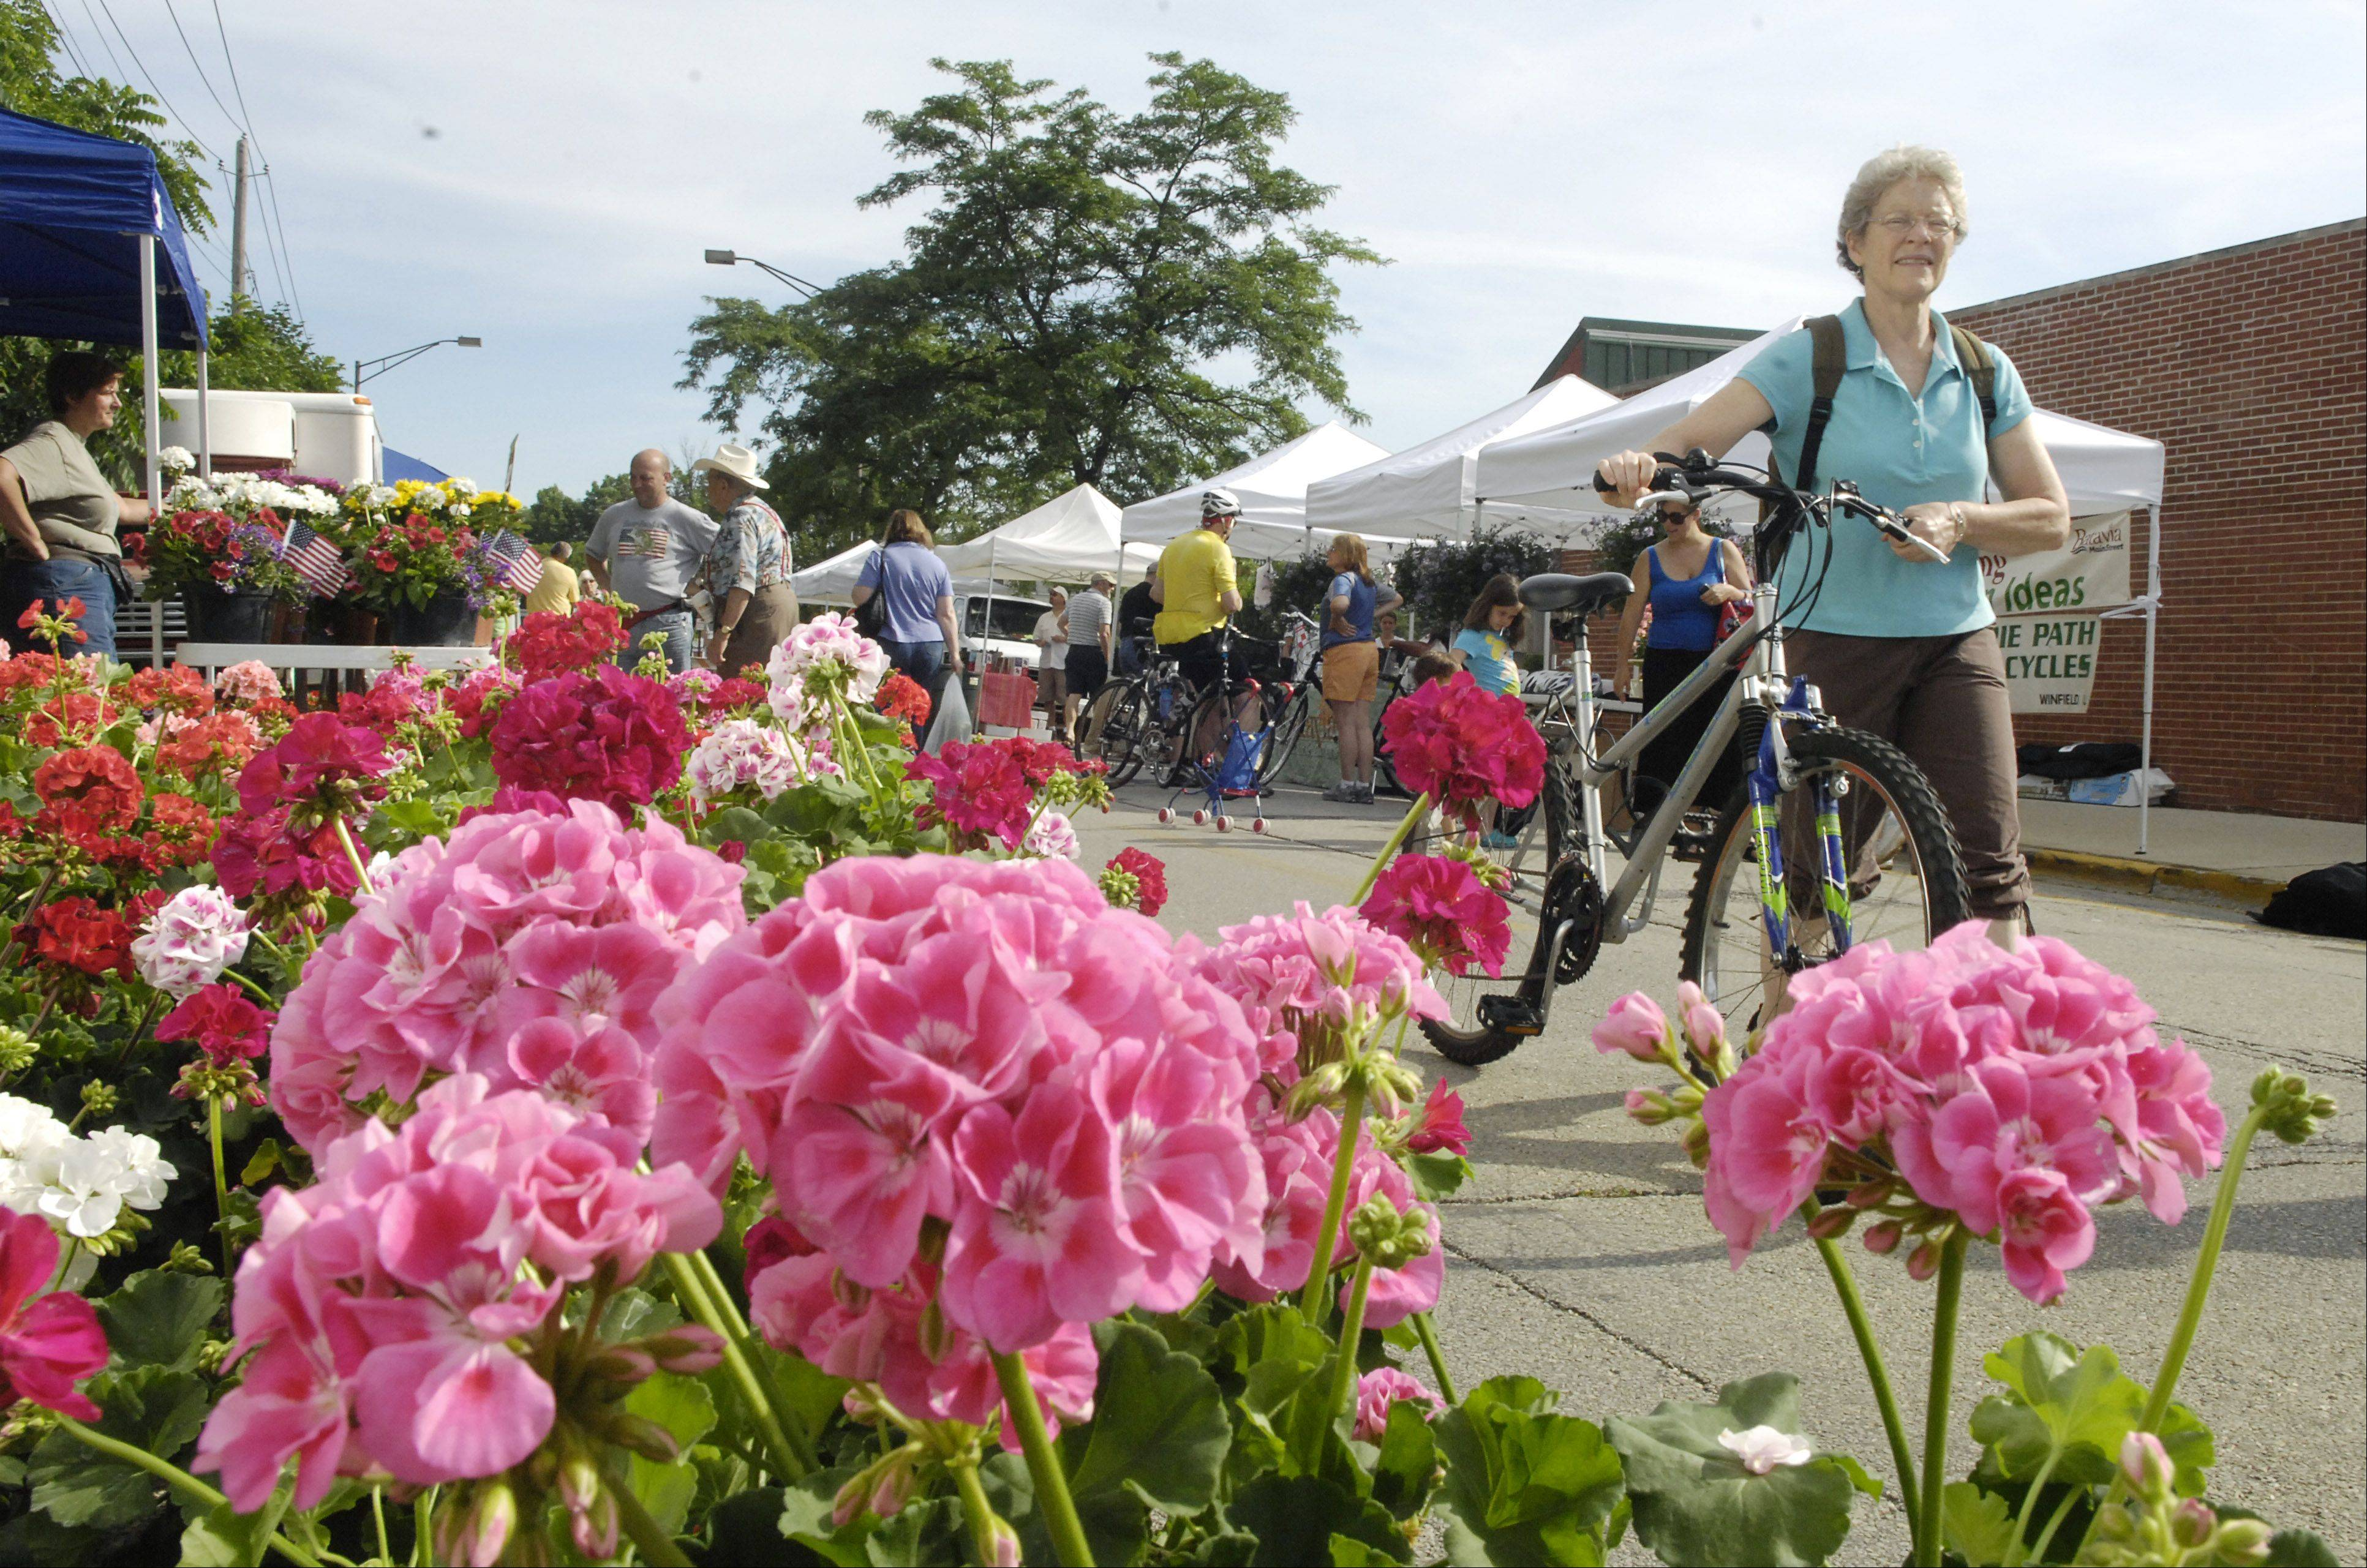 People are organizing a �cash mob� to visit the Batavia Farmers Market Saturday. The idea is to show support for local food producers and show the power of local shopping to stimulate the local economy.